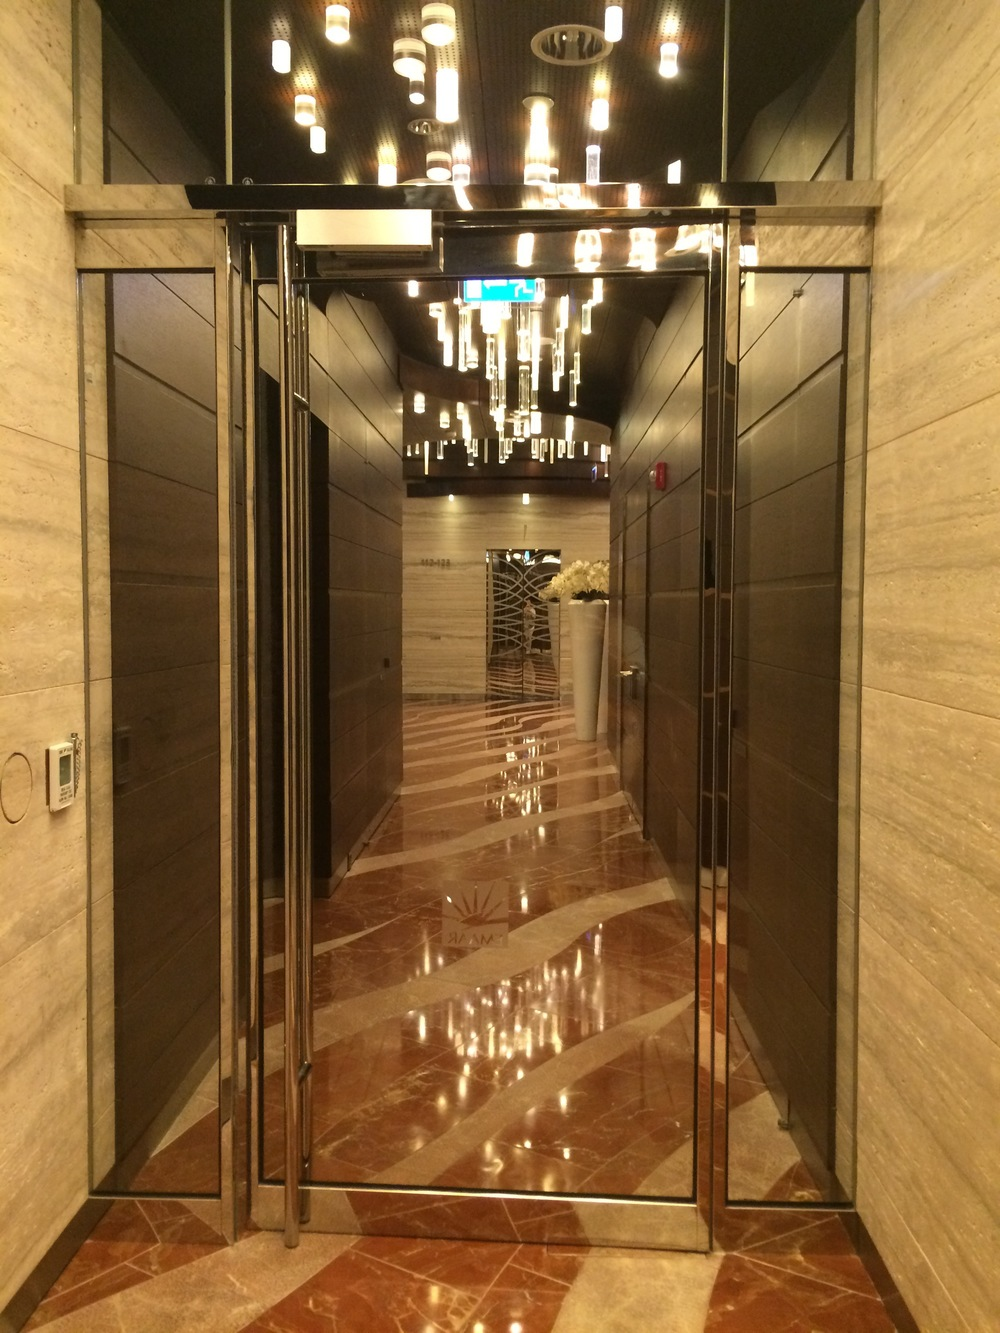 A peek inside the beautiful hallways of the Burj